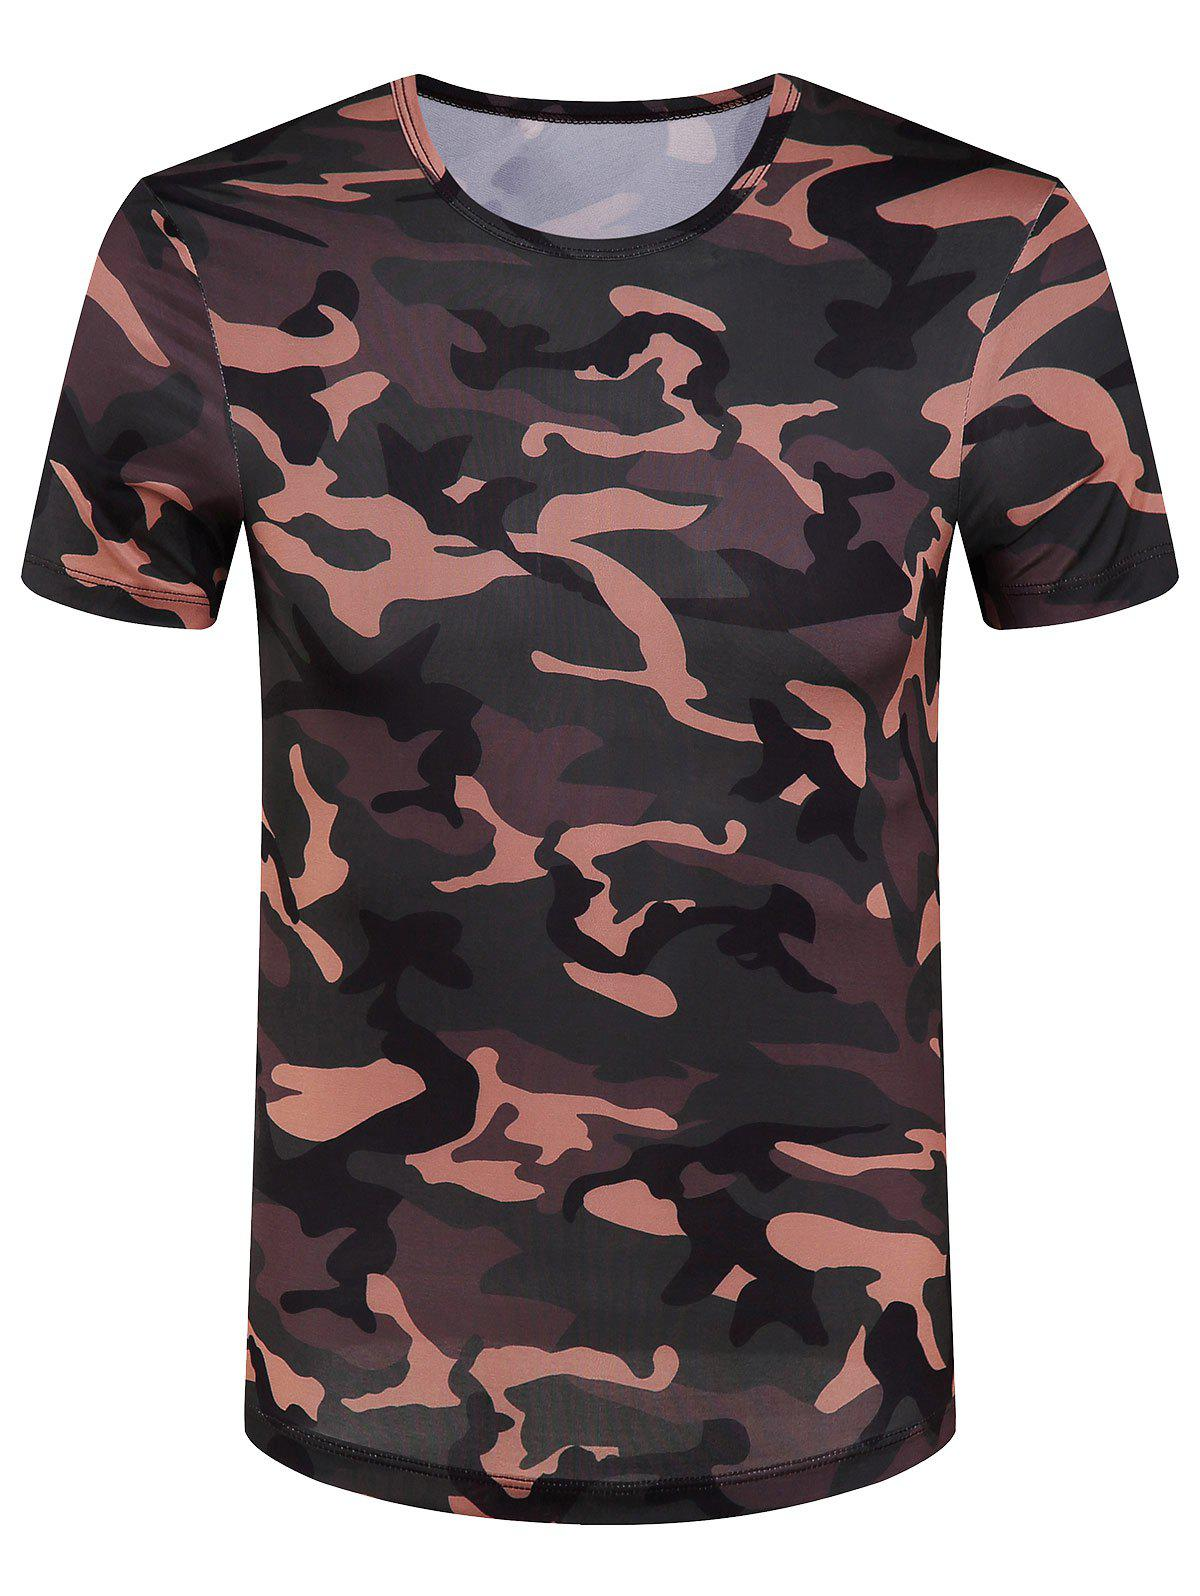 Men's Slimming Camouflage Round Collar T-Shirt - ARMY GREEN 2XL